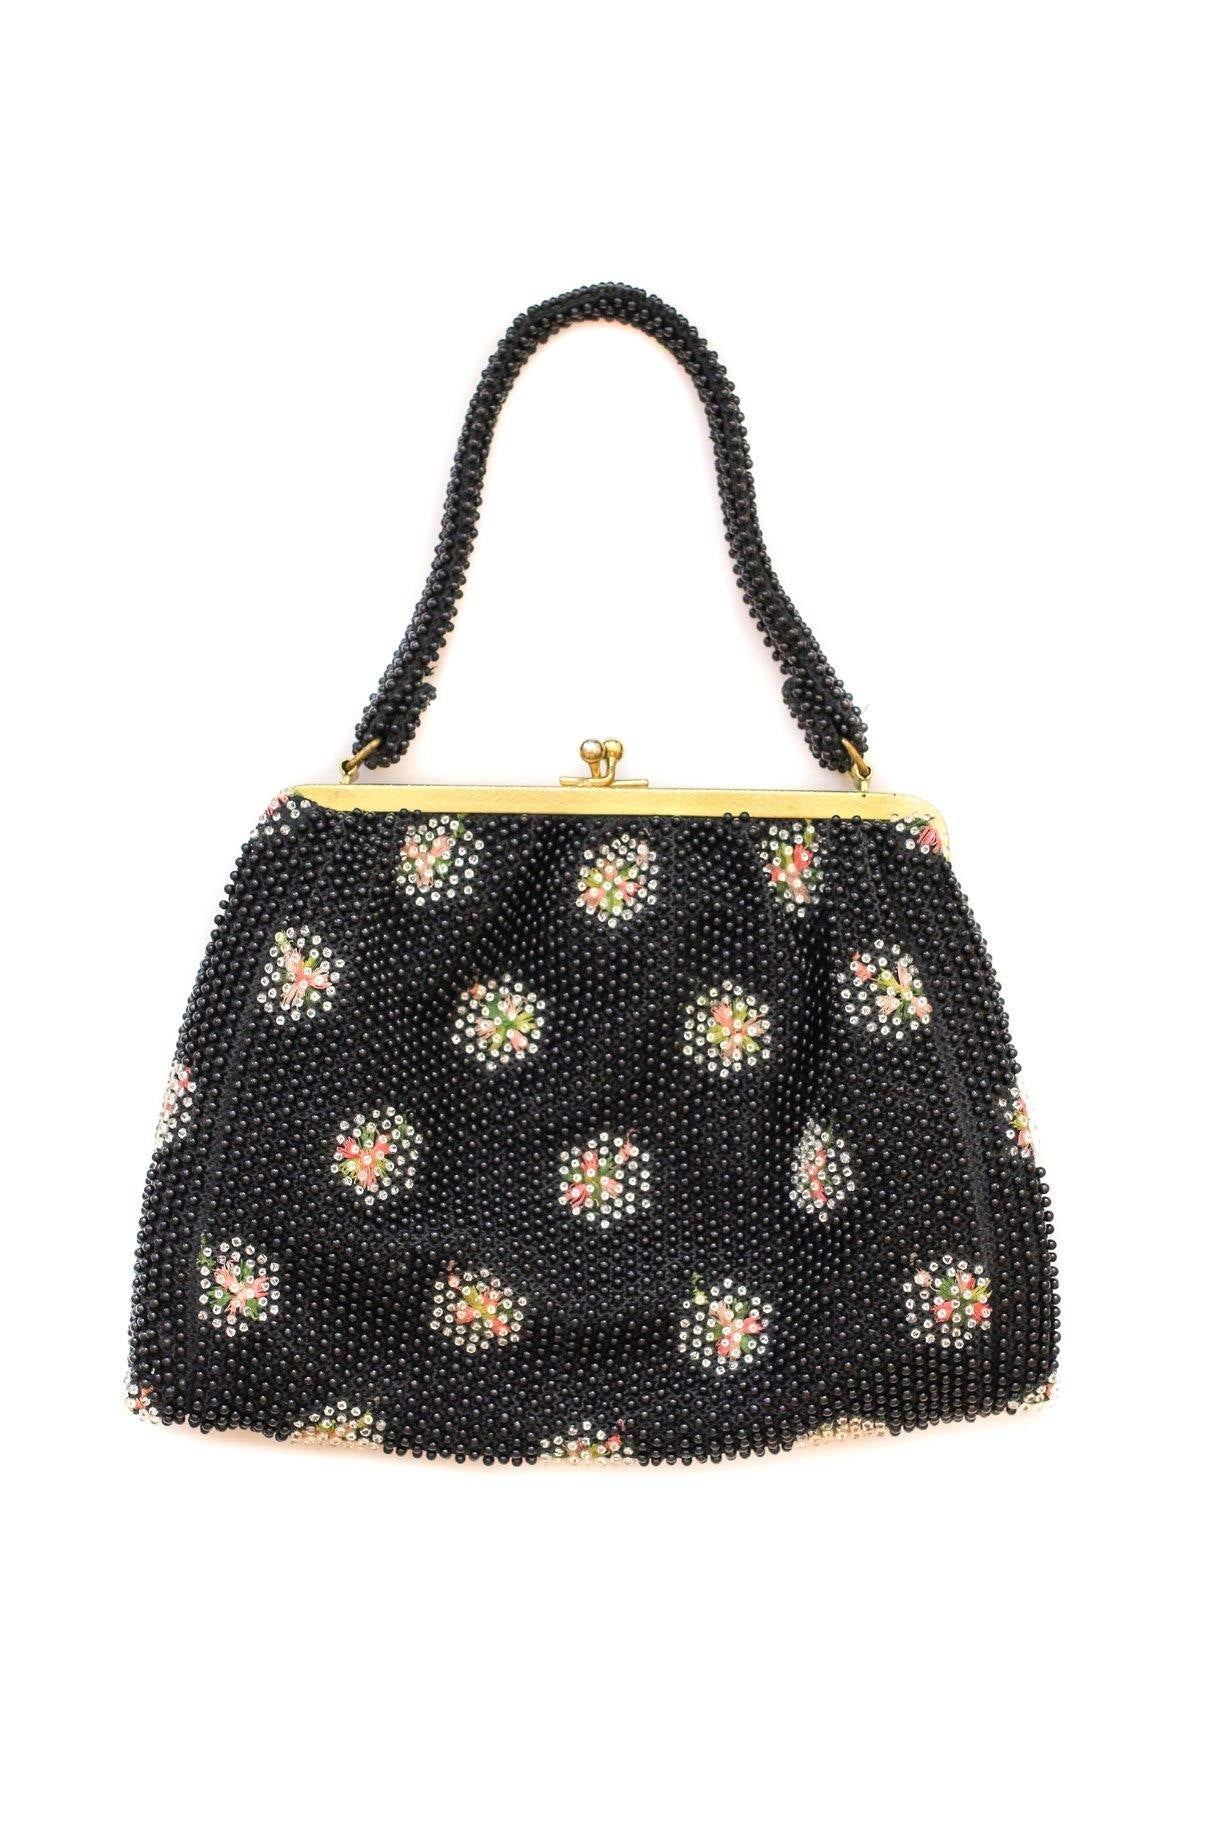 Black Beaded Floral Burst Bag - Sweet & Spark